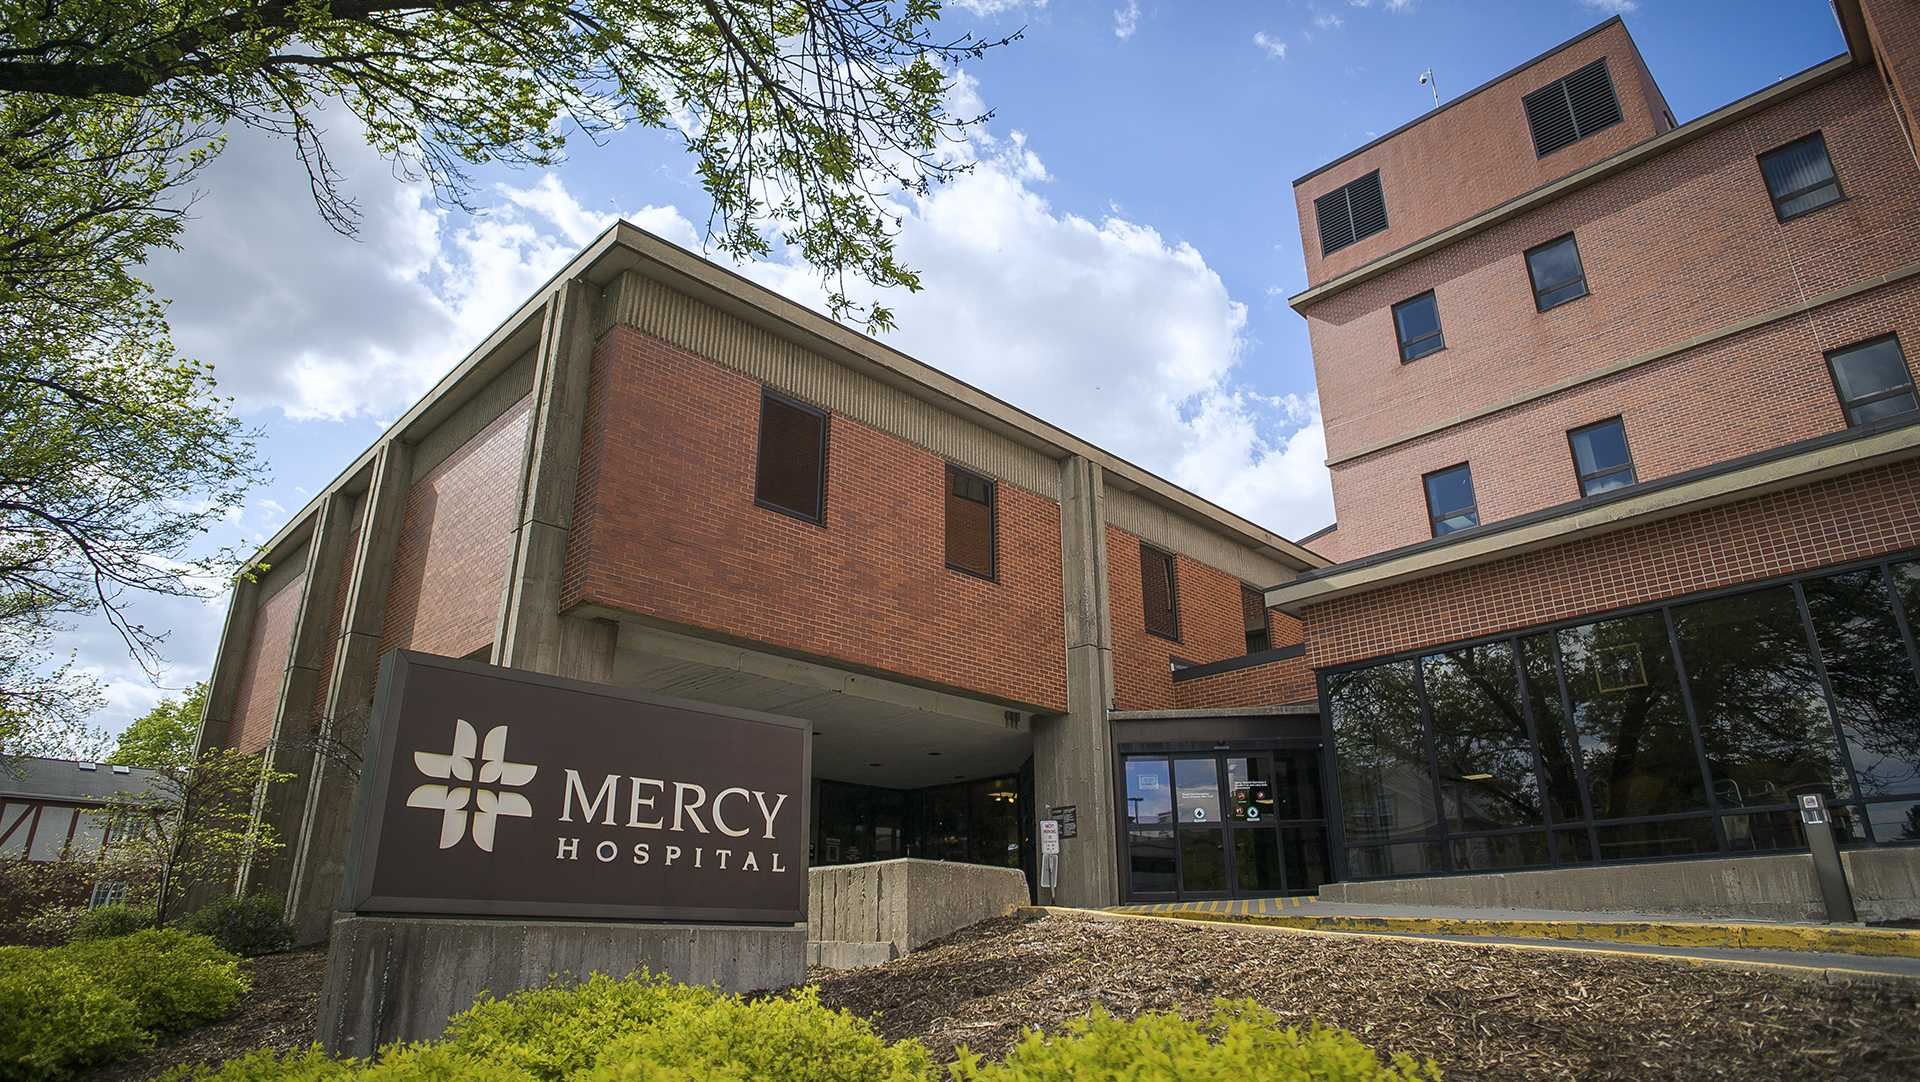 Mercy Hospital as seen from the street in Iowa City on Thursday, May 4, 2017. Mercy is affiliating with the Mercy Health Network in the near future. (The Daily Iowan/James Year)